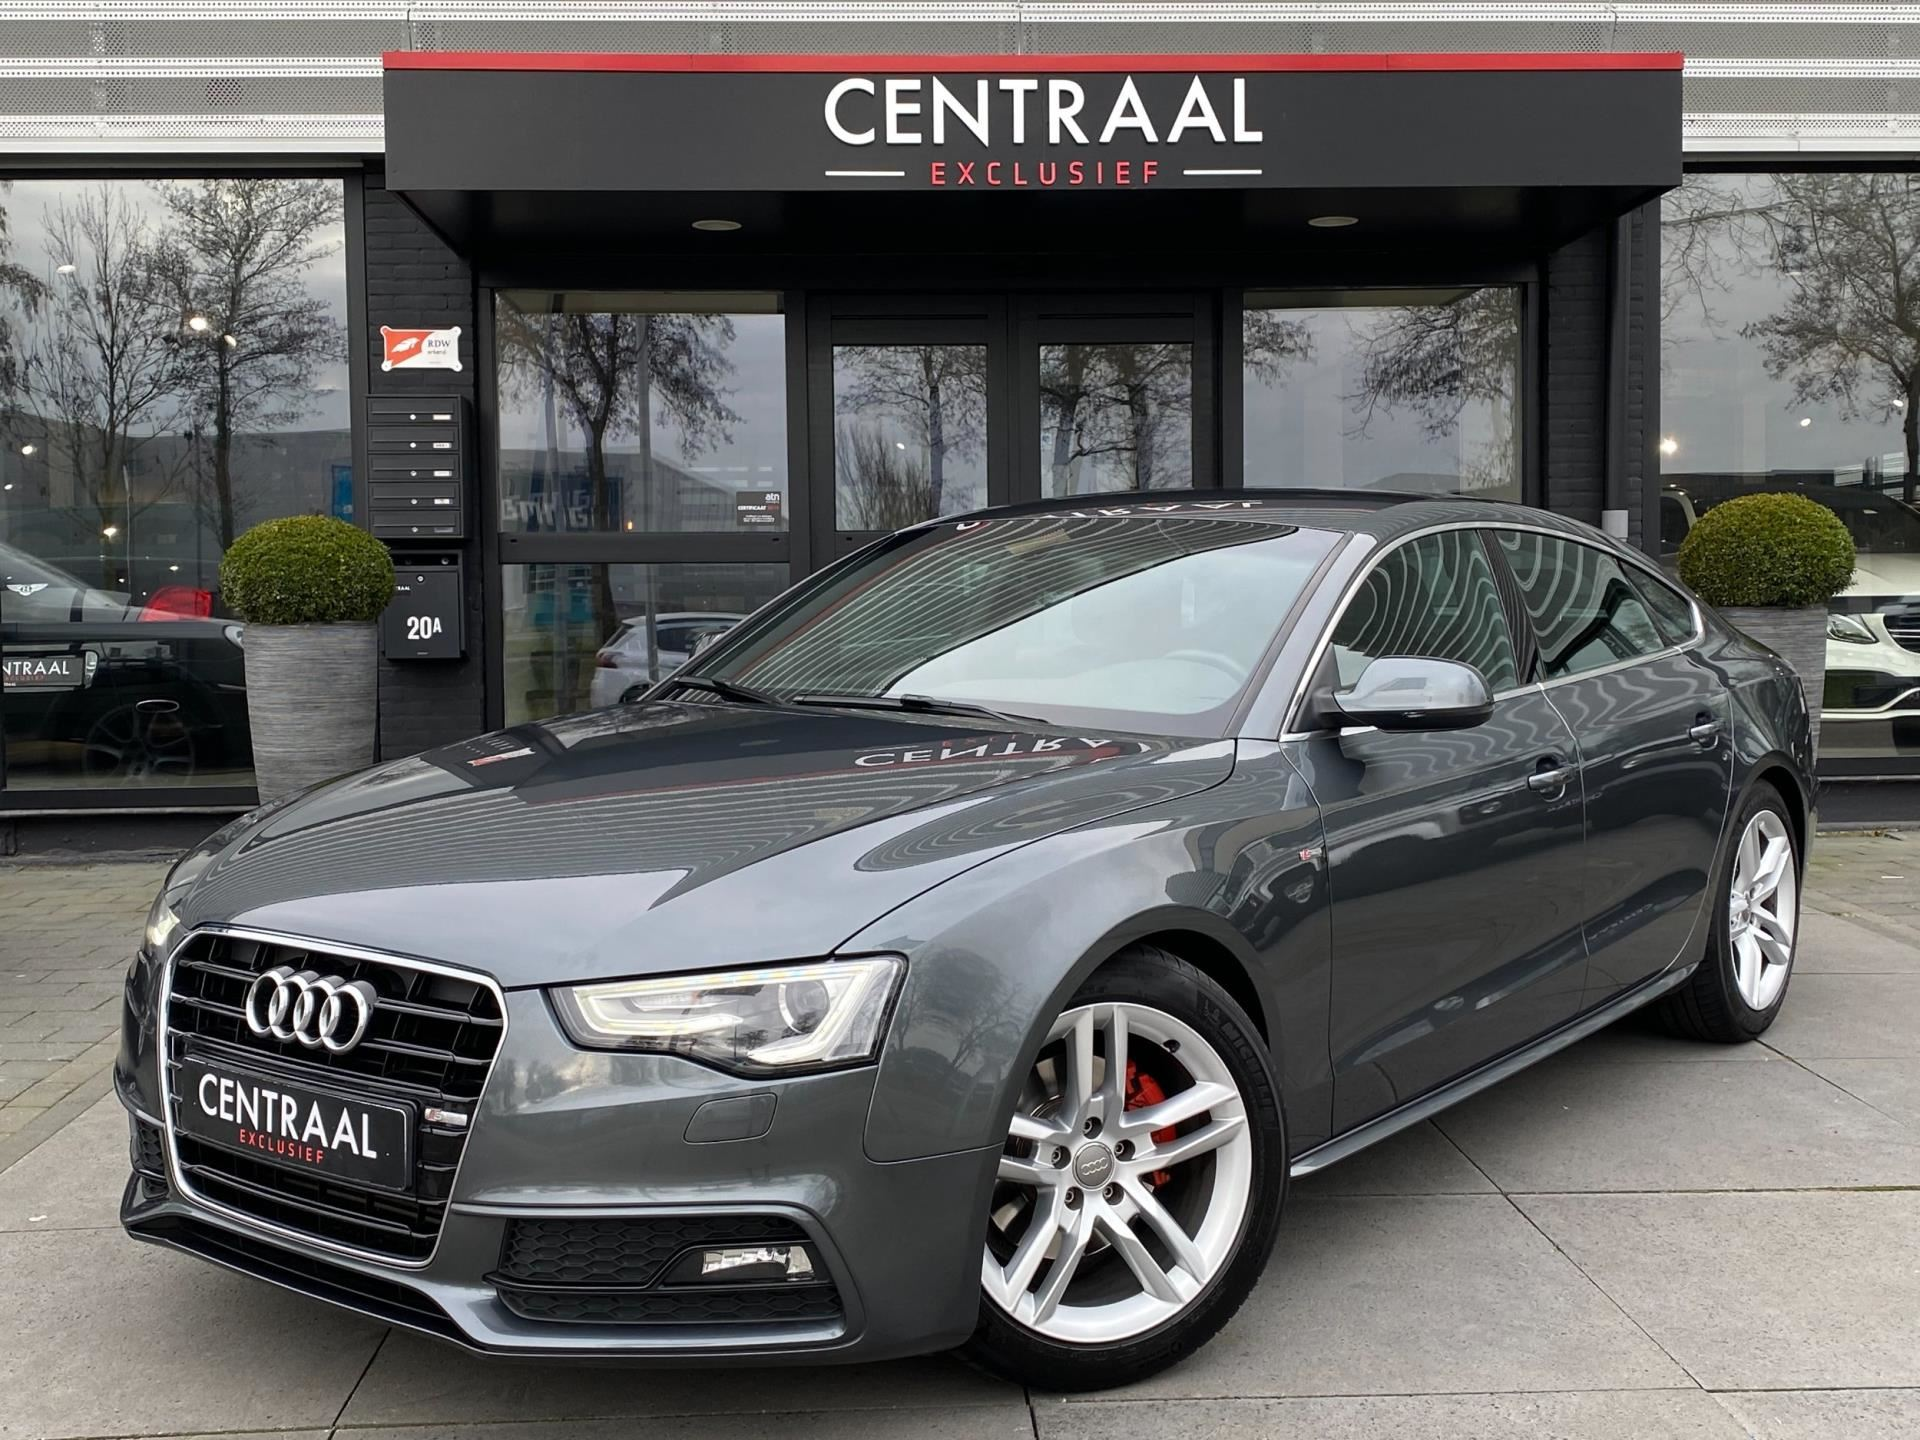 Audi A5 Sportback occasion - Centraal Exclusief B.V.